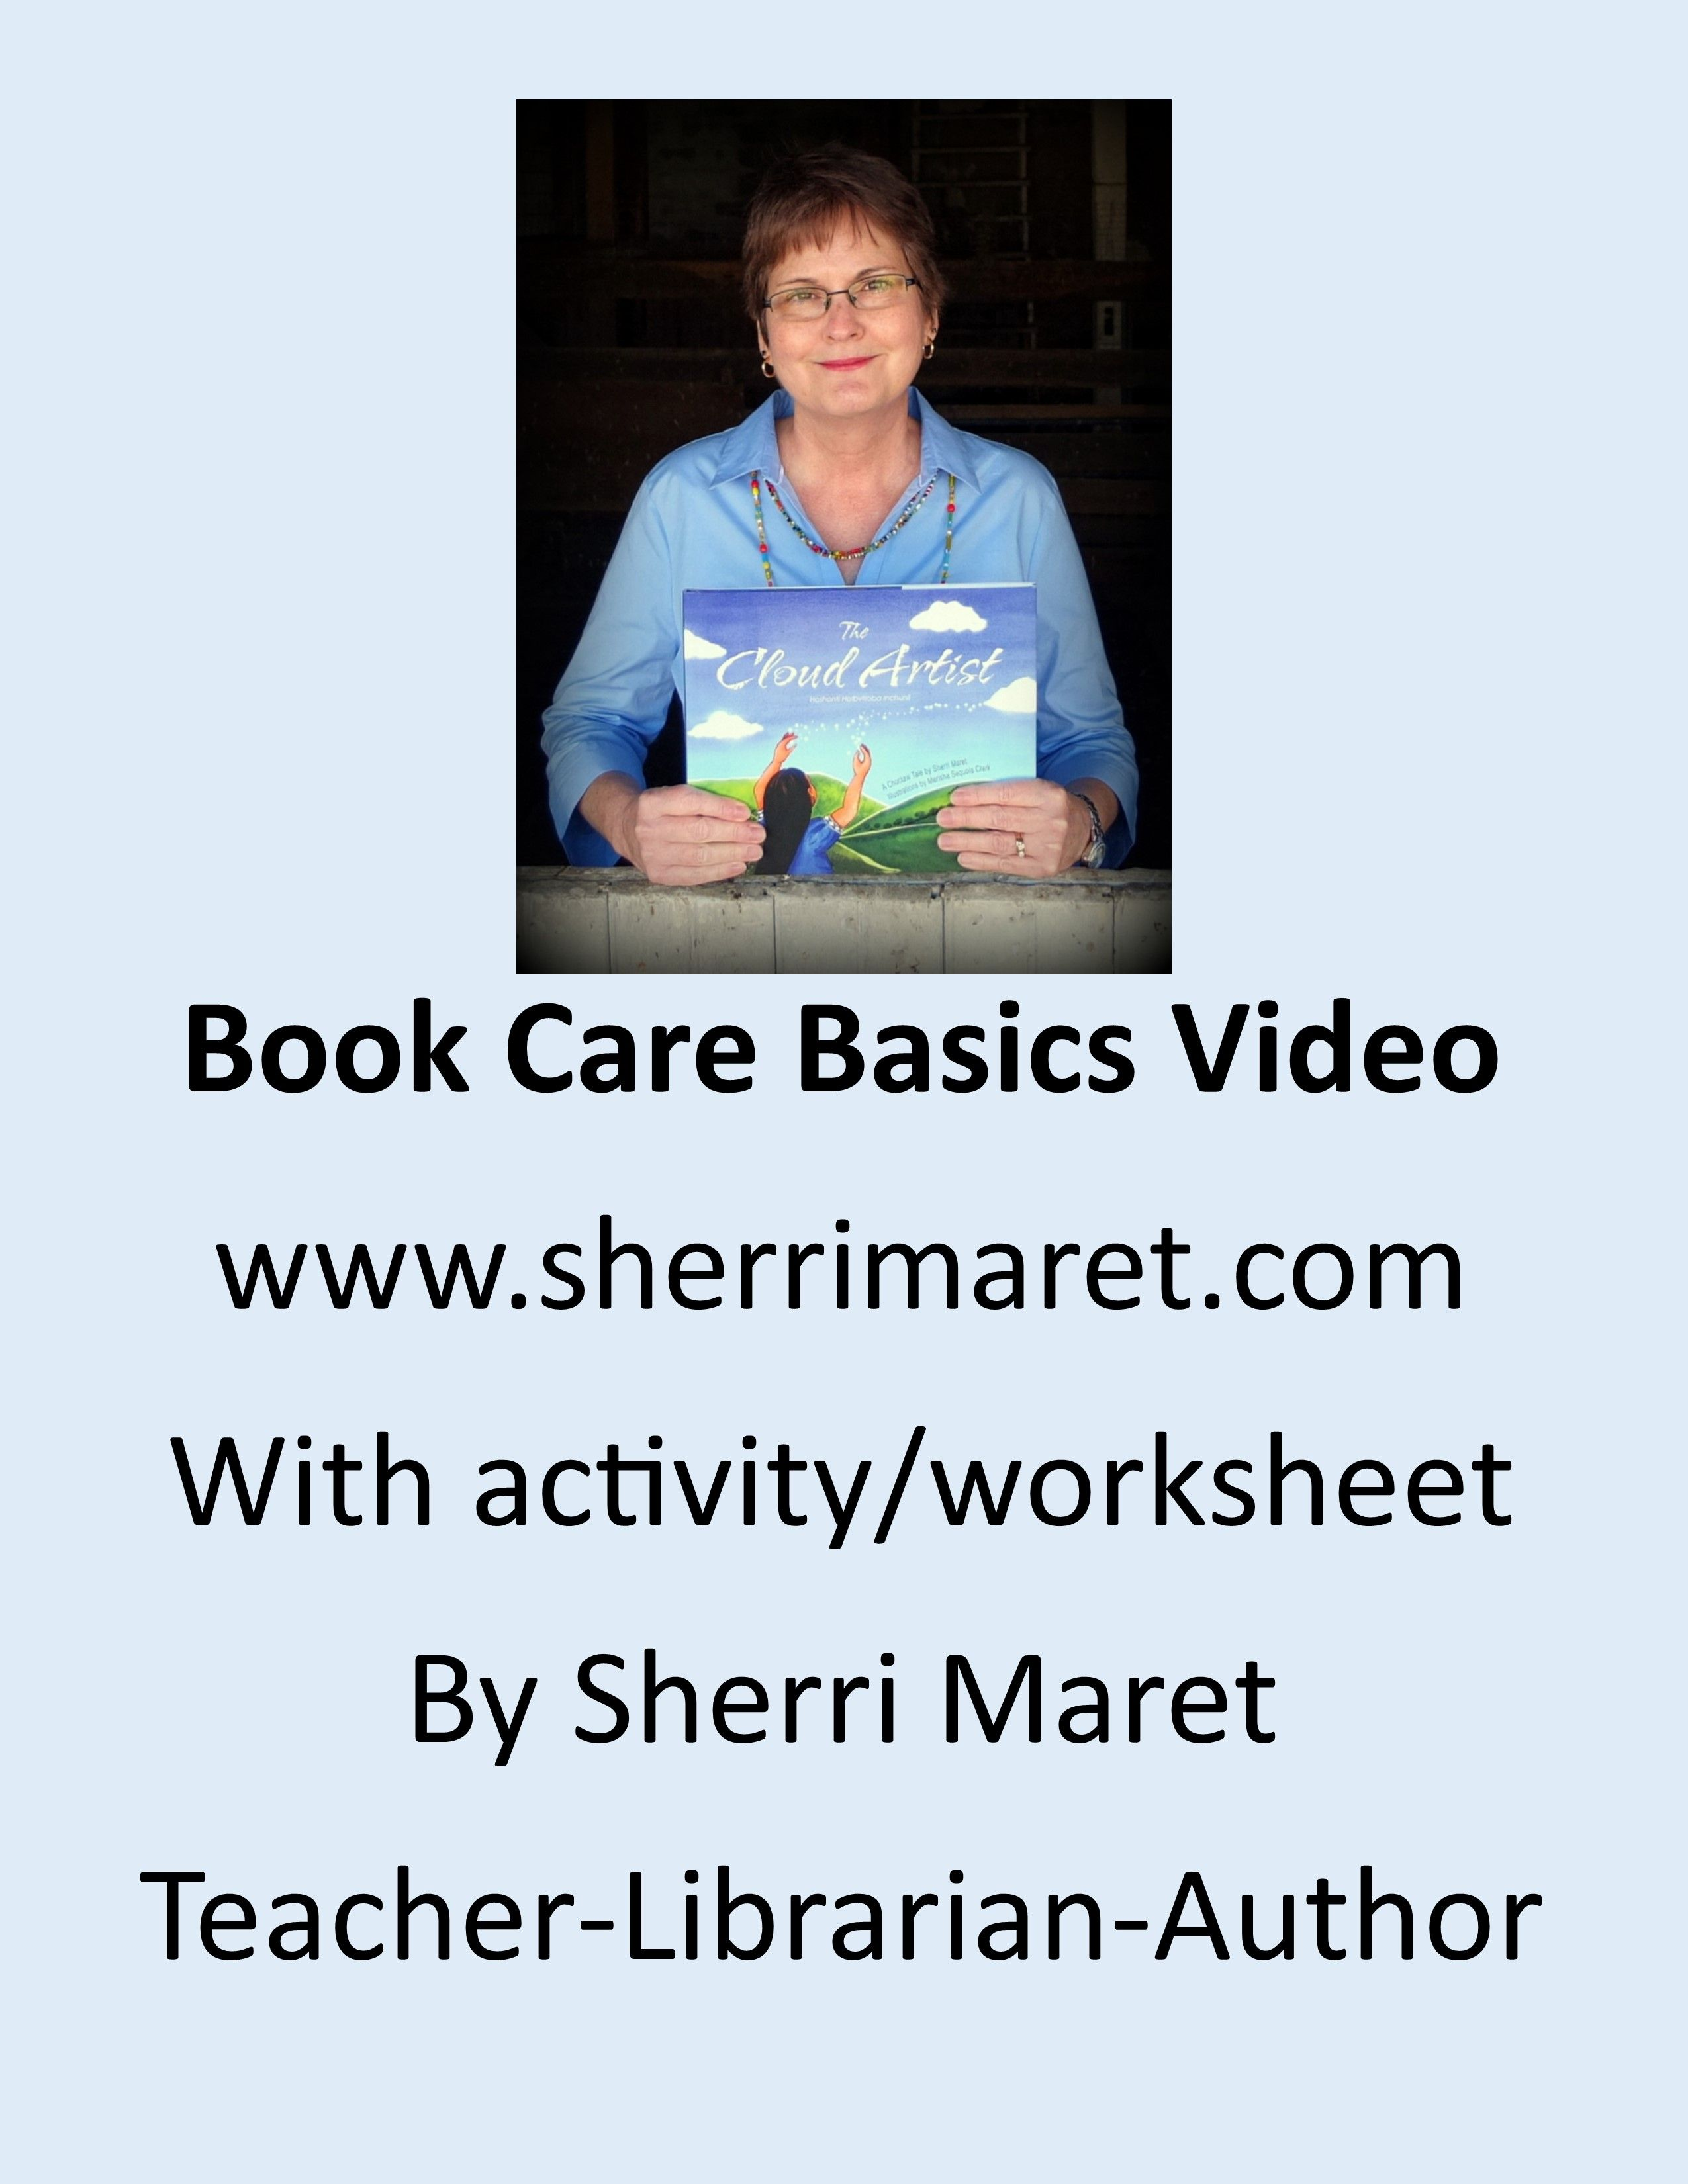 This Is A Book Care Basics Video To Help Children Learn